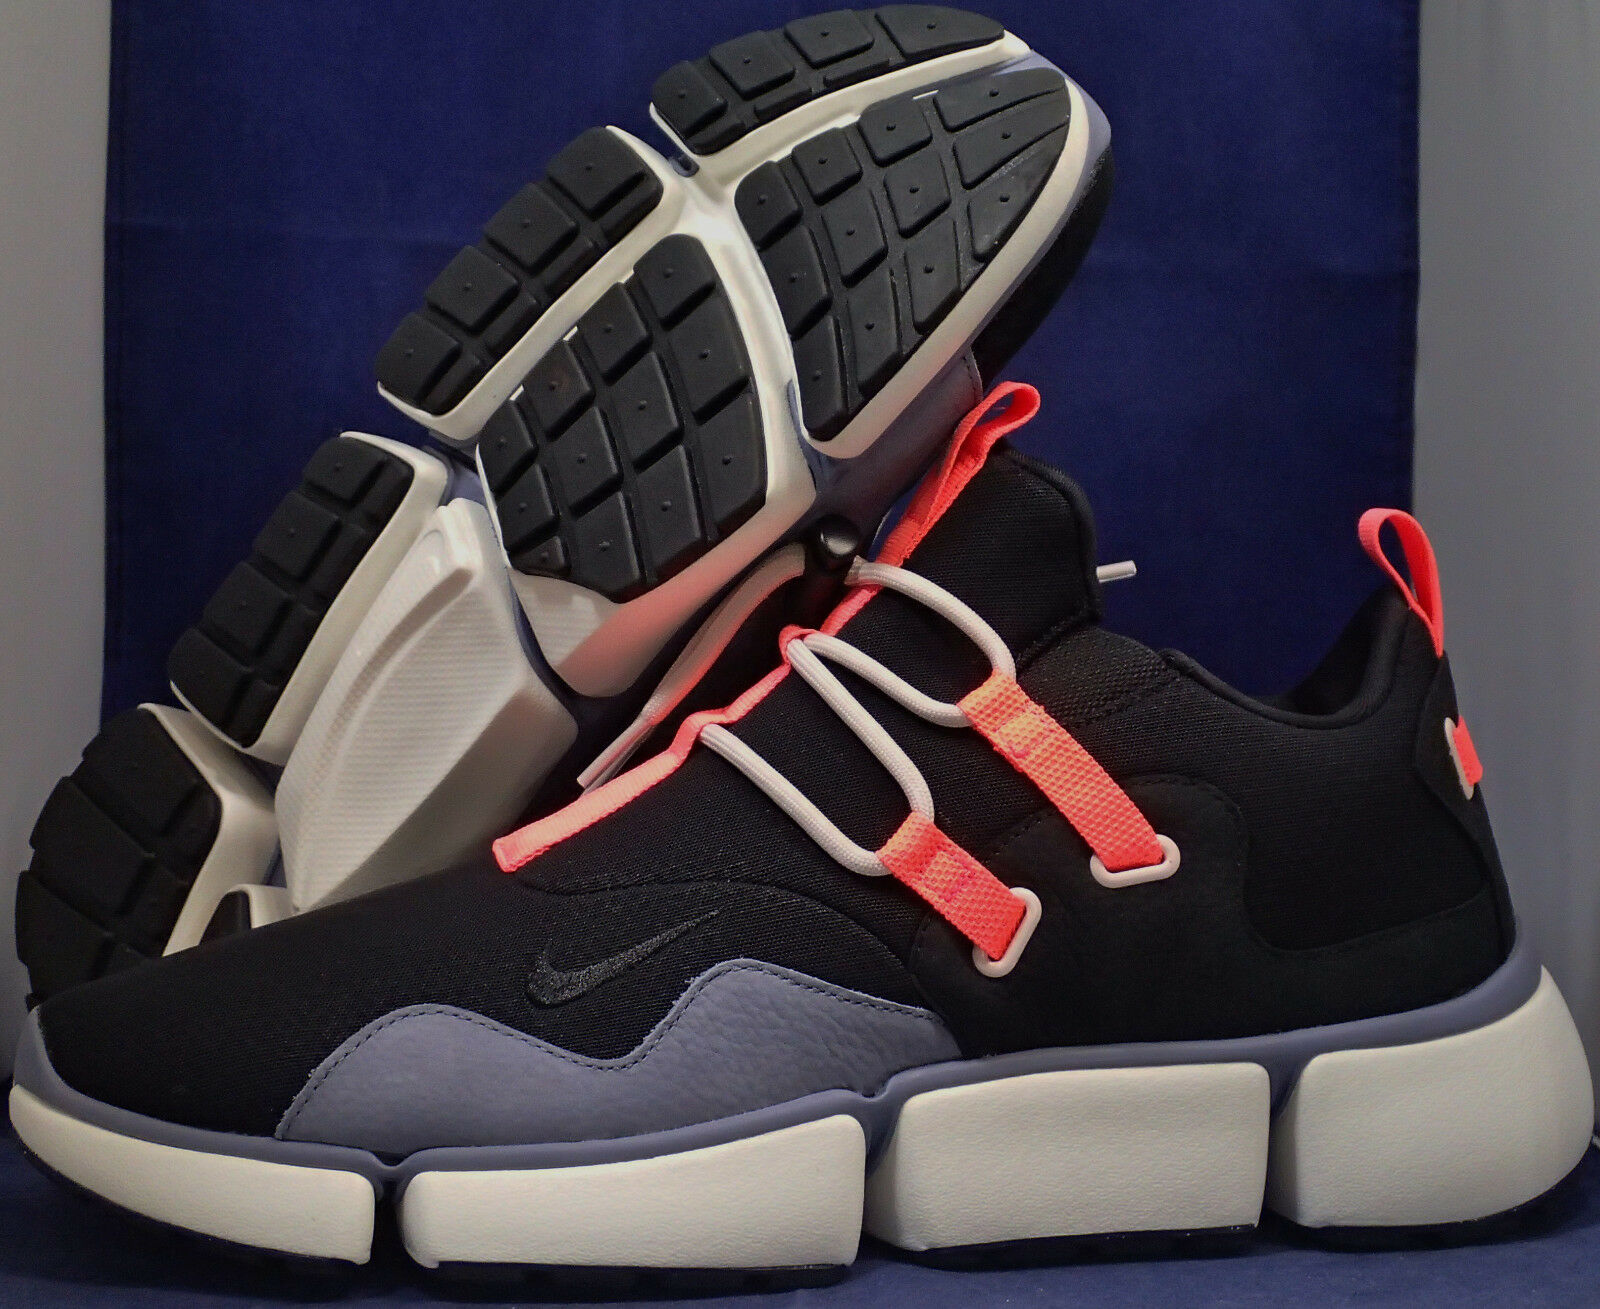 NikeLab Pocketknife DM Black Dark Sky Blue Hot Pink SZ 13 ( 910571-001 )